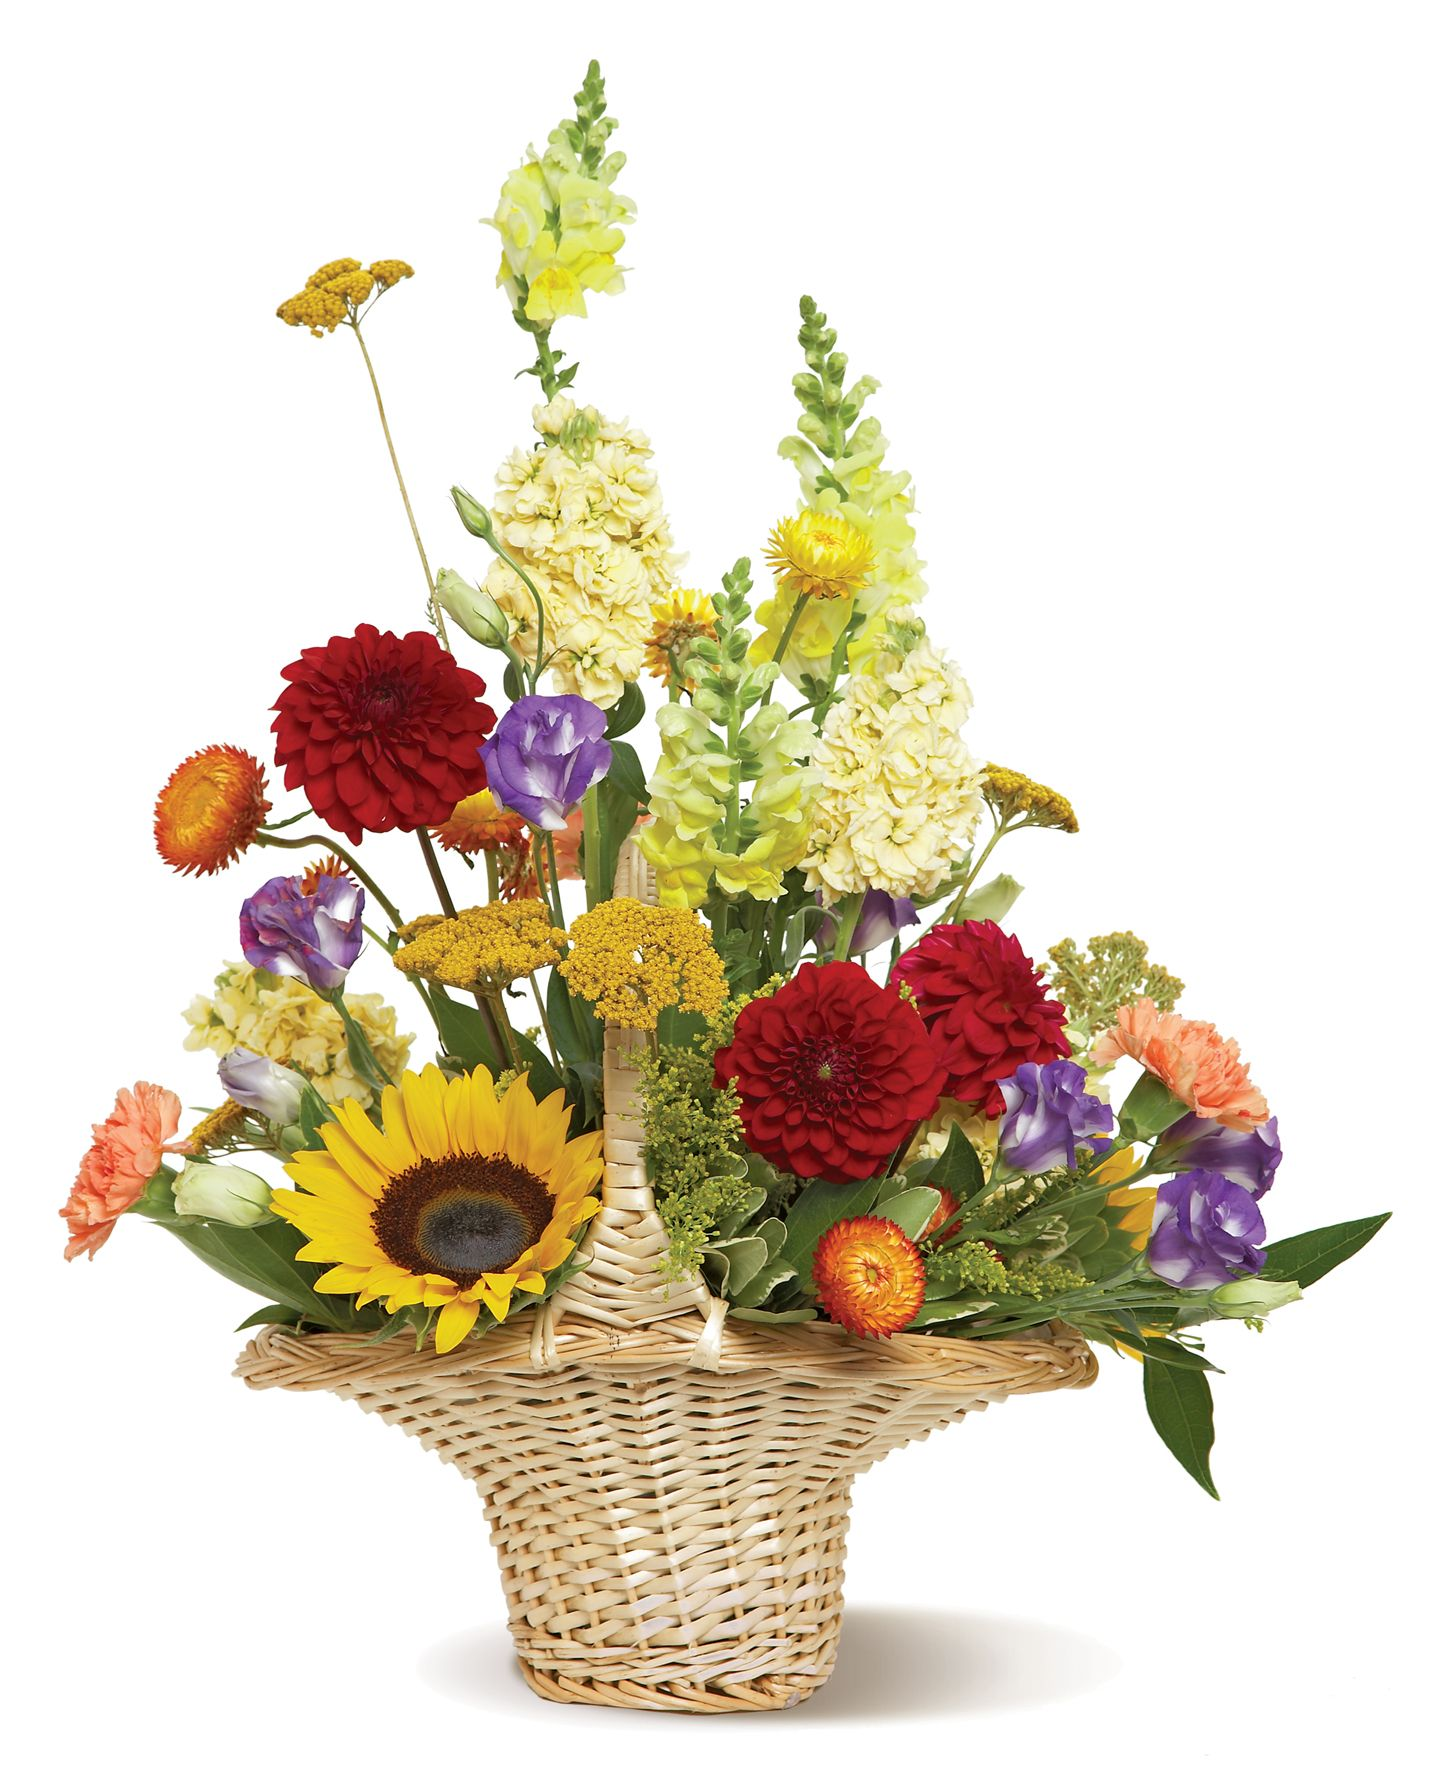 Buy Cheap Flowers And Get The Quality Too Flowers